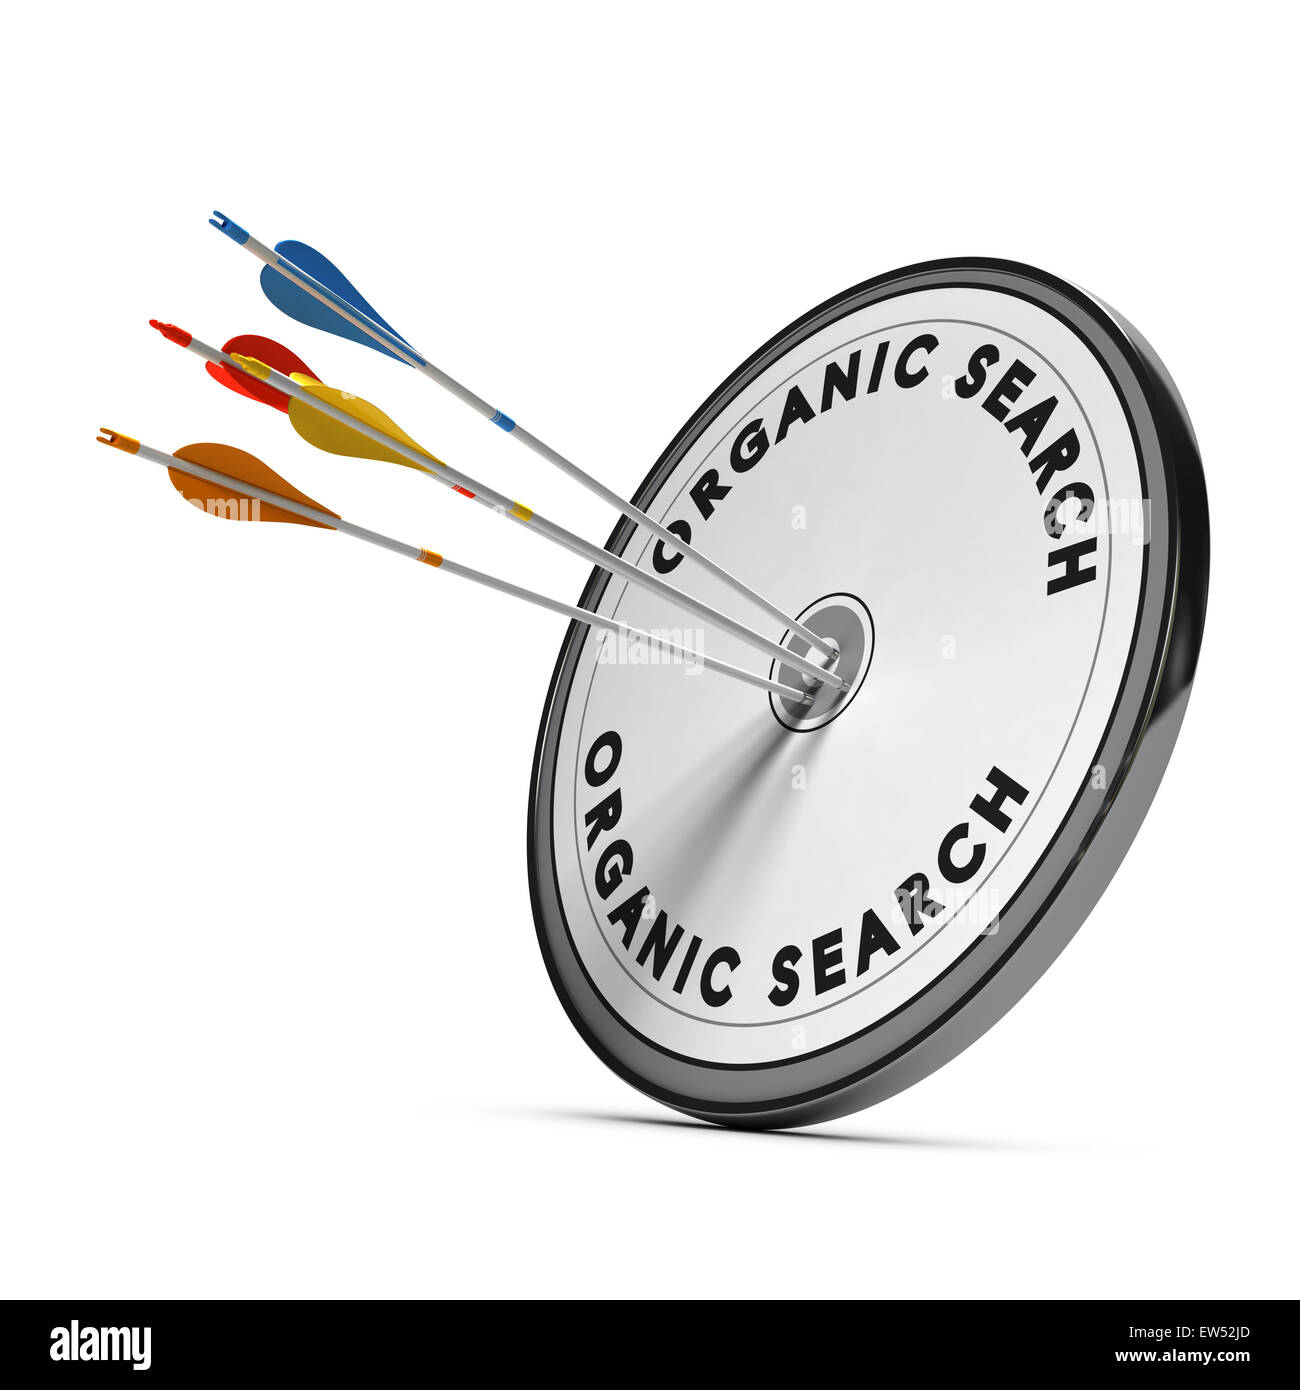 Organic search results on a target with four arrows hitting the center, concept for online visibility - Stock Image